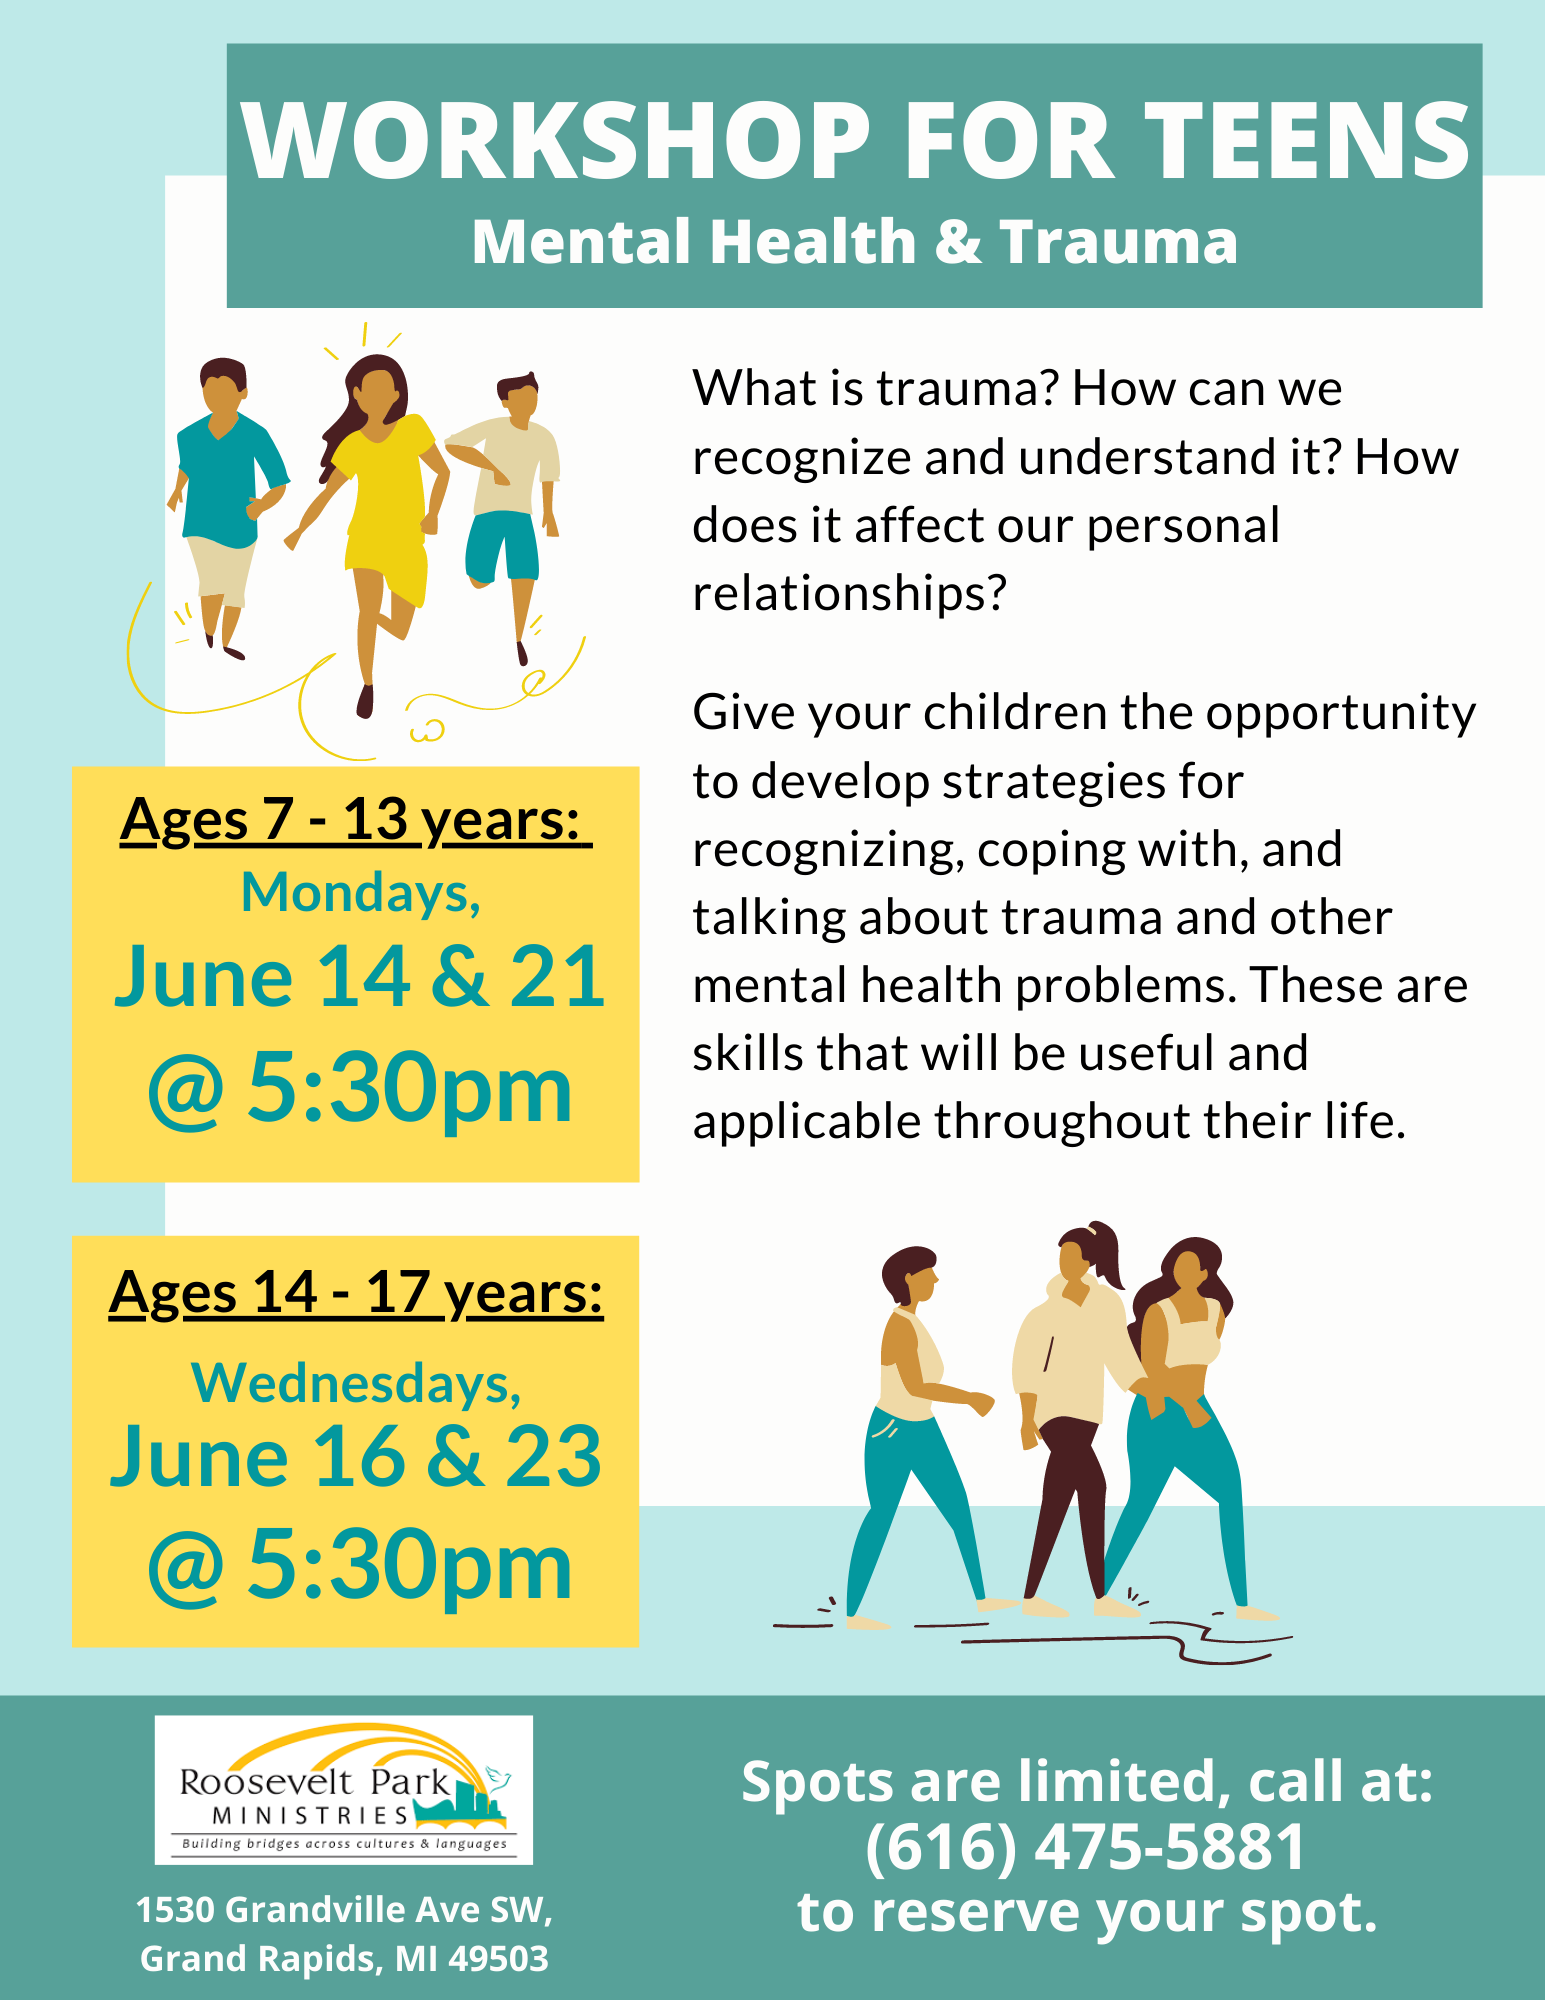 a mental health workshop series specifically tailored towards kids and adolescents